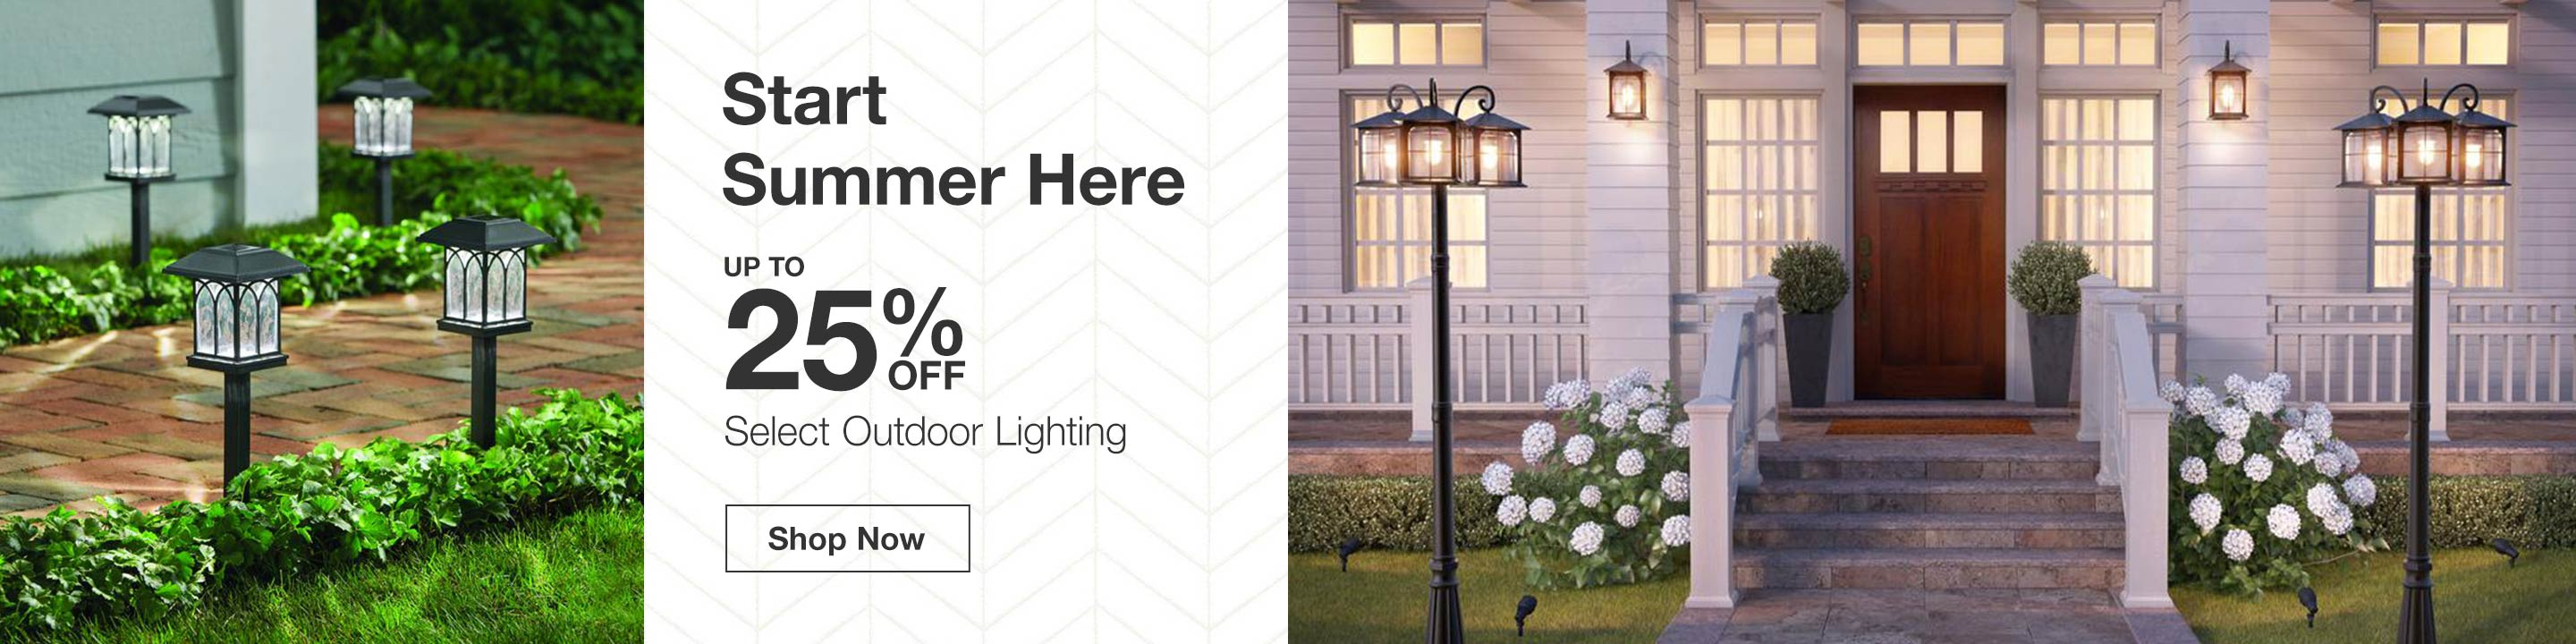 Up to 25% Off Select Outdoor Lighting